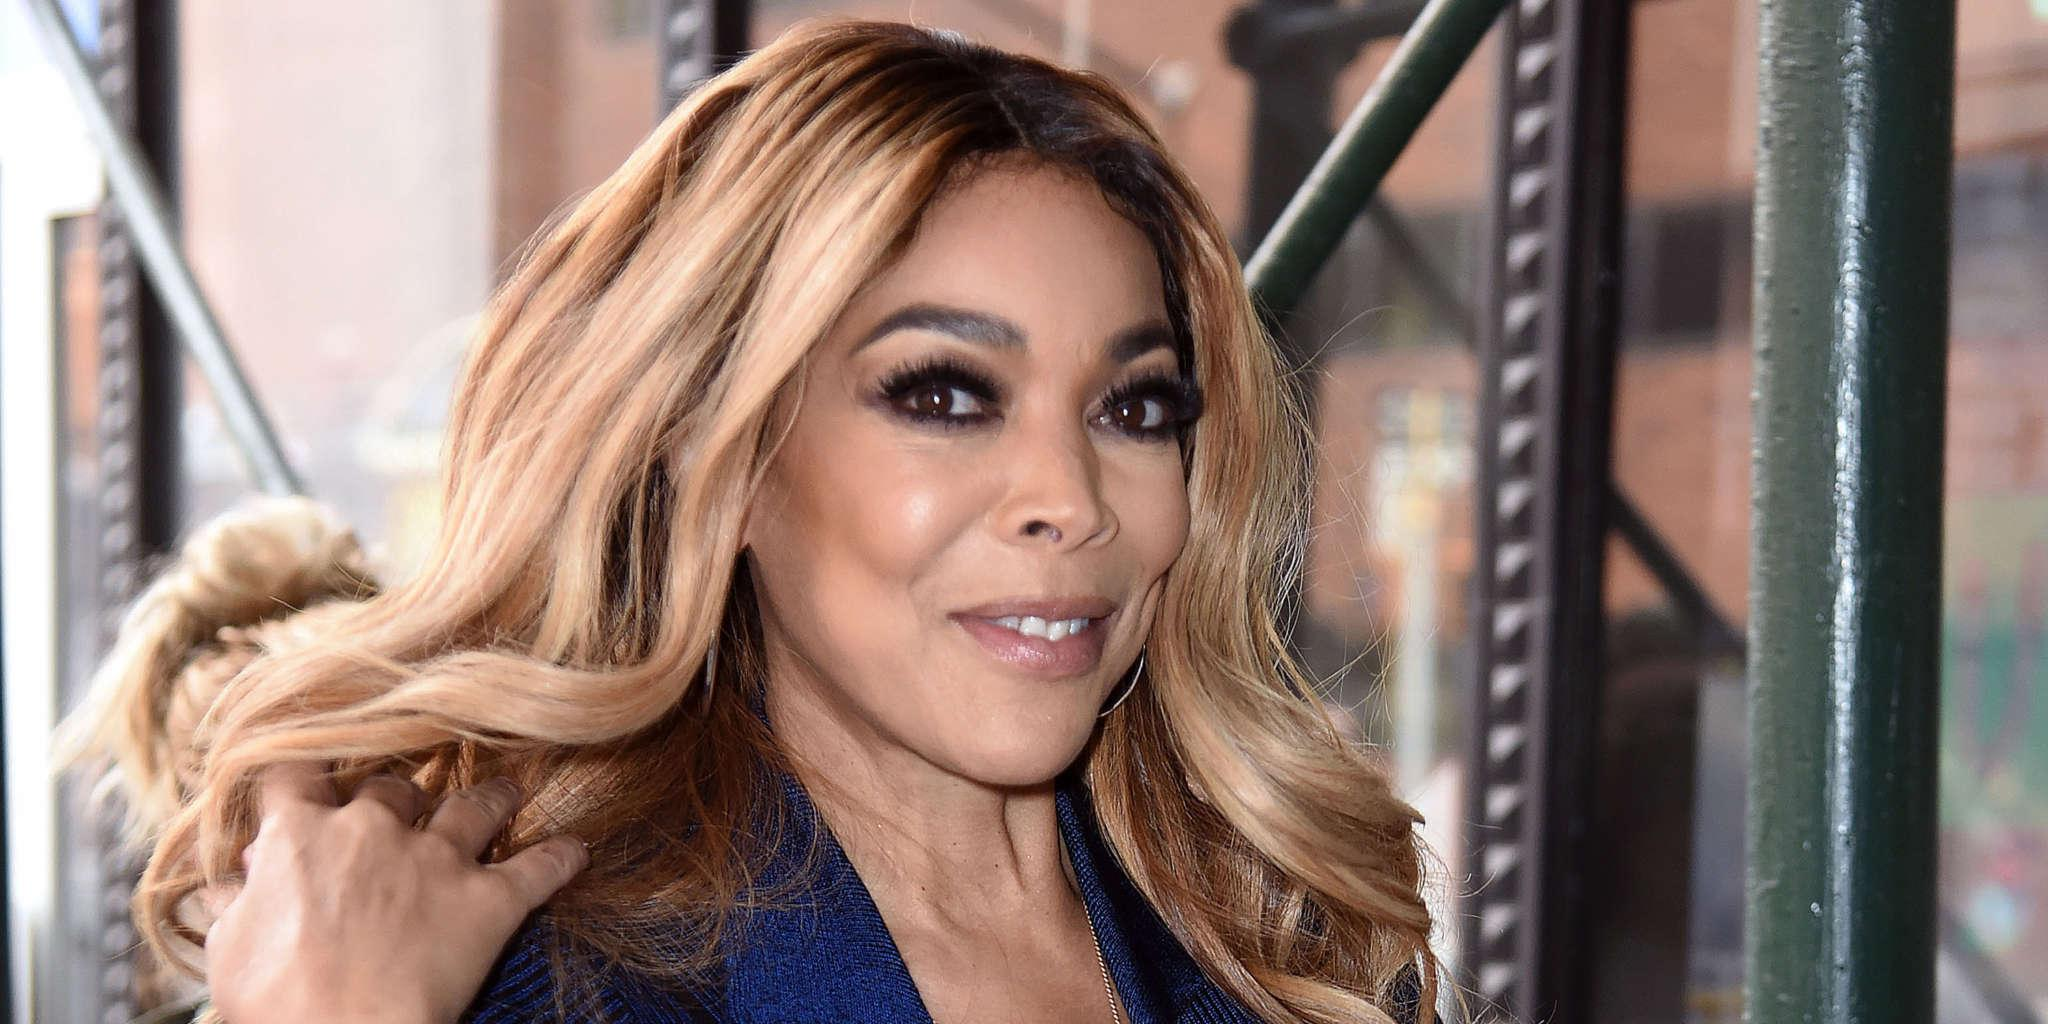 Wendy Williams Is Proud Of Lady Gaga For Finding Love Again After Split - Just Like The Talk Show Host!